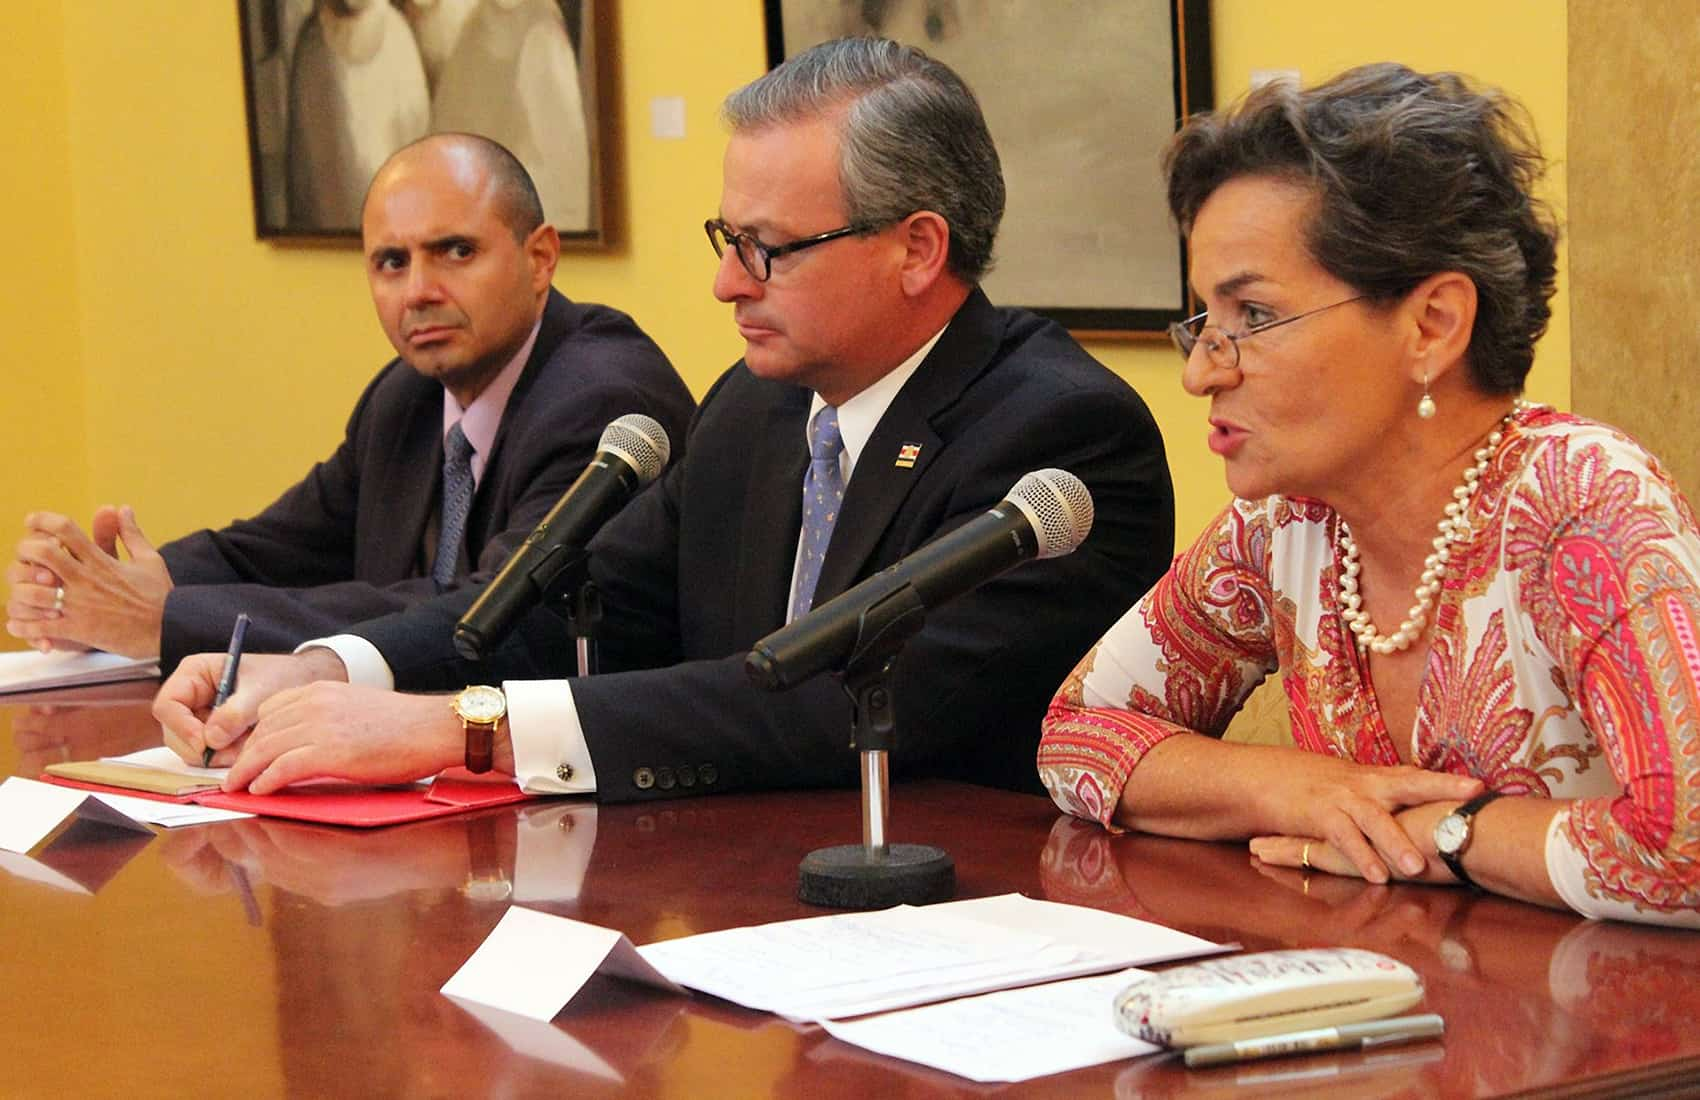 Christiana Figueres at the Foreign Ministry. Sept. 12, 2016.